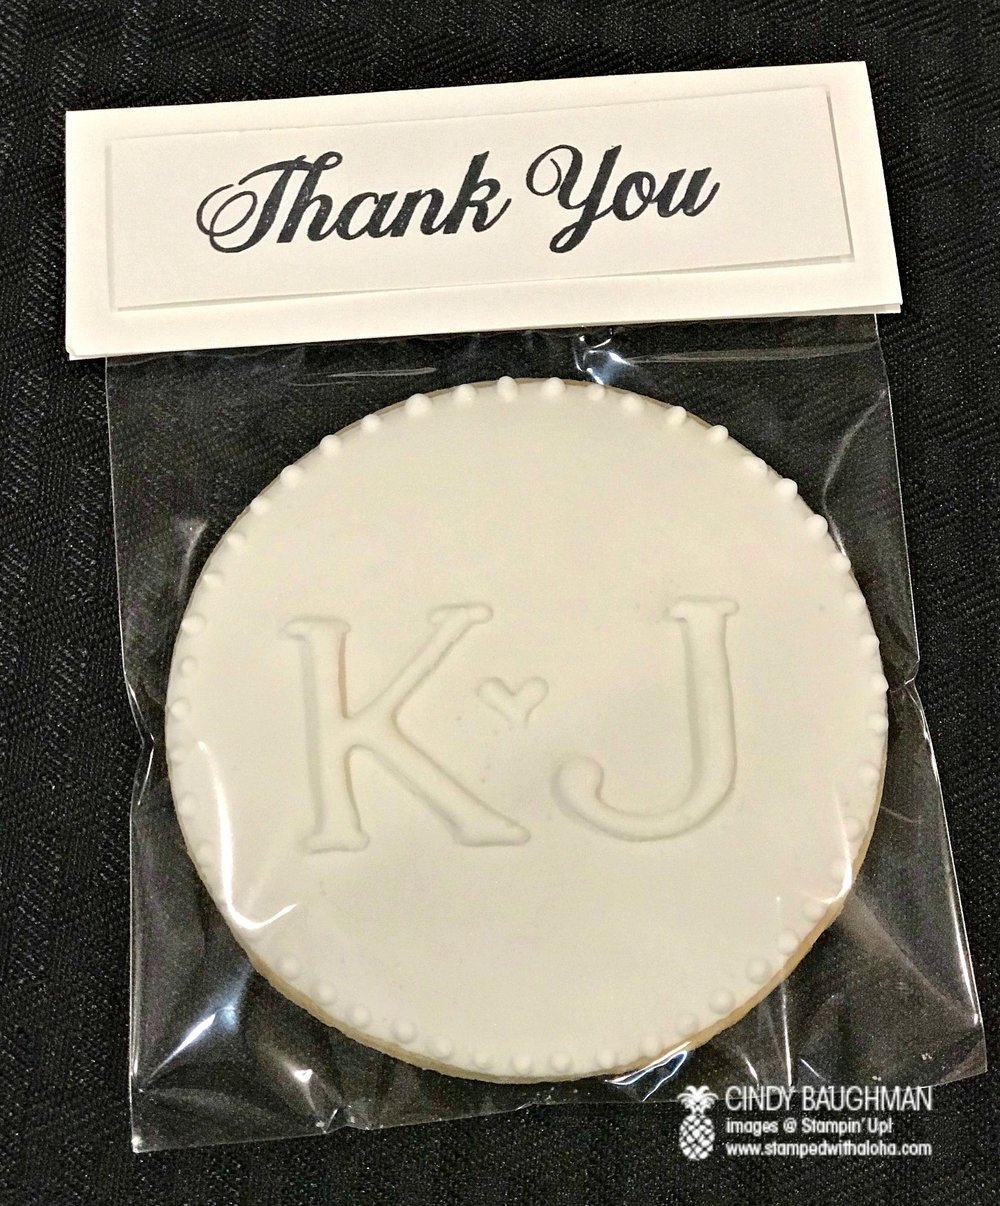 Kalani and Joyce's wedding favor